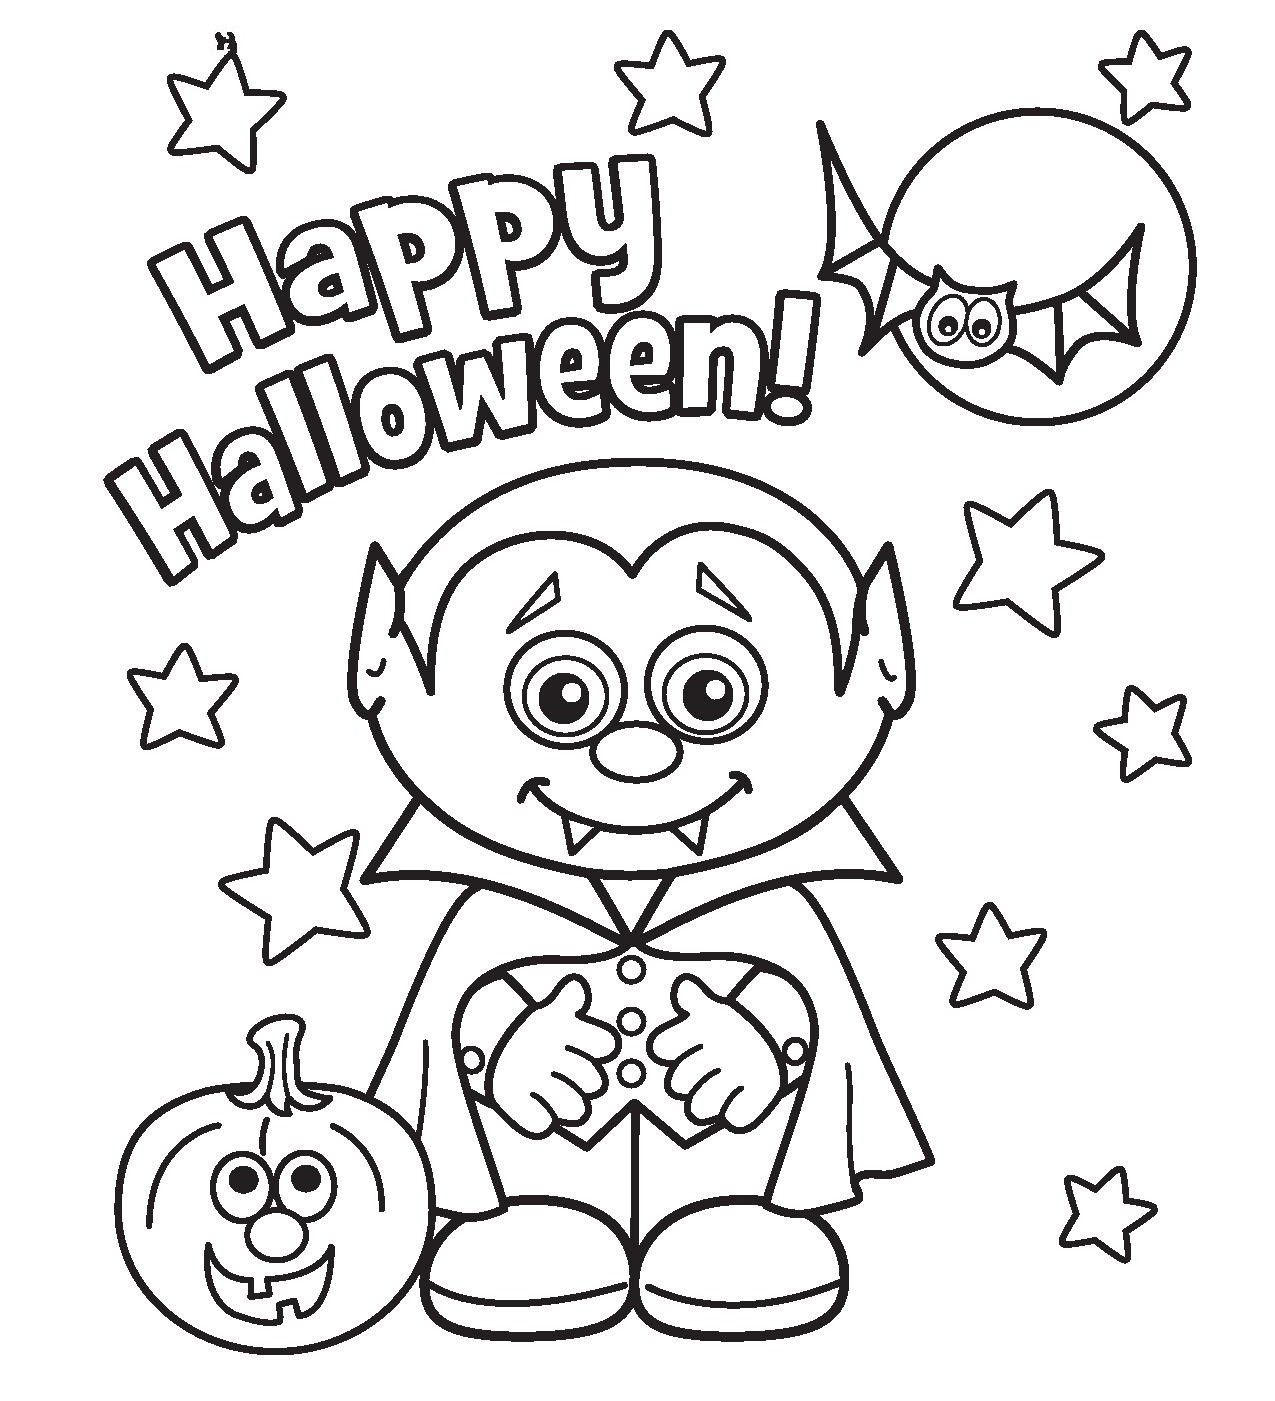 cute halloween bat coloring pages dudeindisneycom - Cute Halloween Bat Coloring Pages